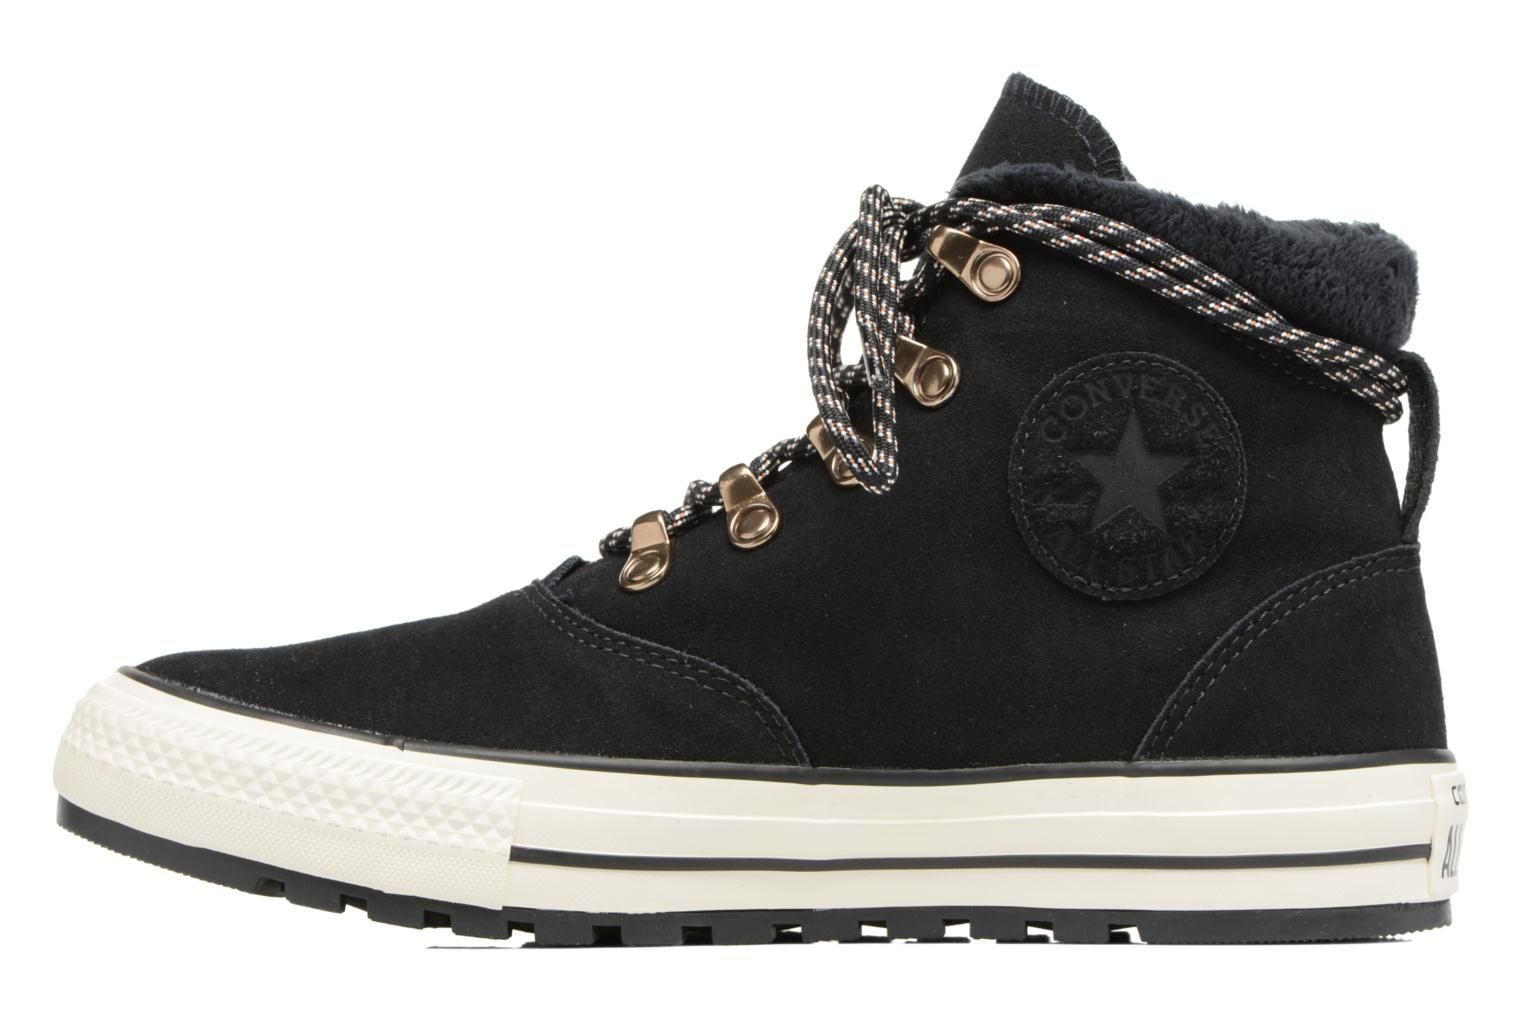 Bottines et boots Converse Chuck Taylor All Star Ember Boot Suede + Fur Hi Noir vue face